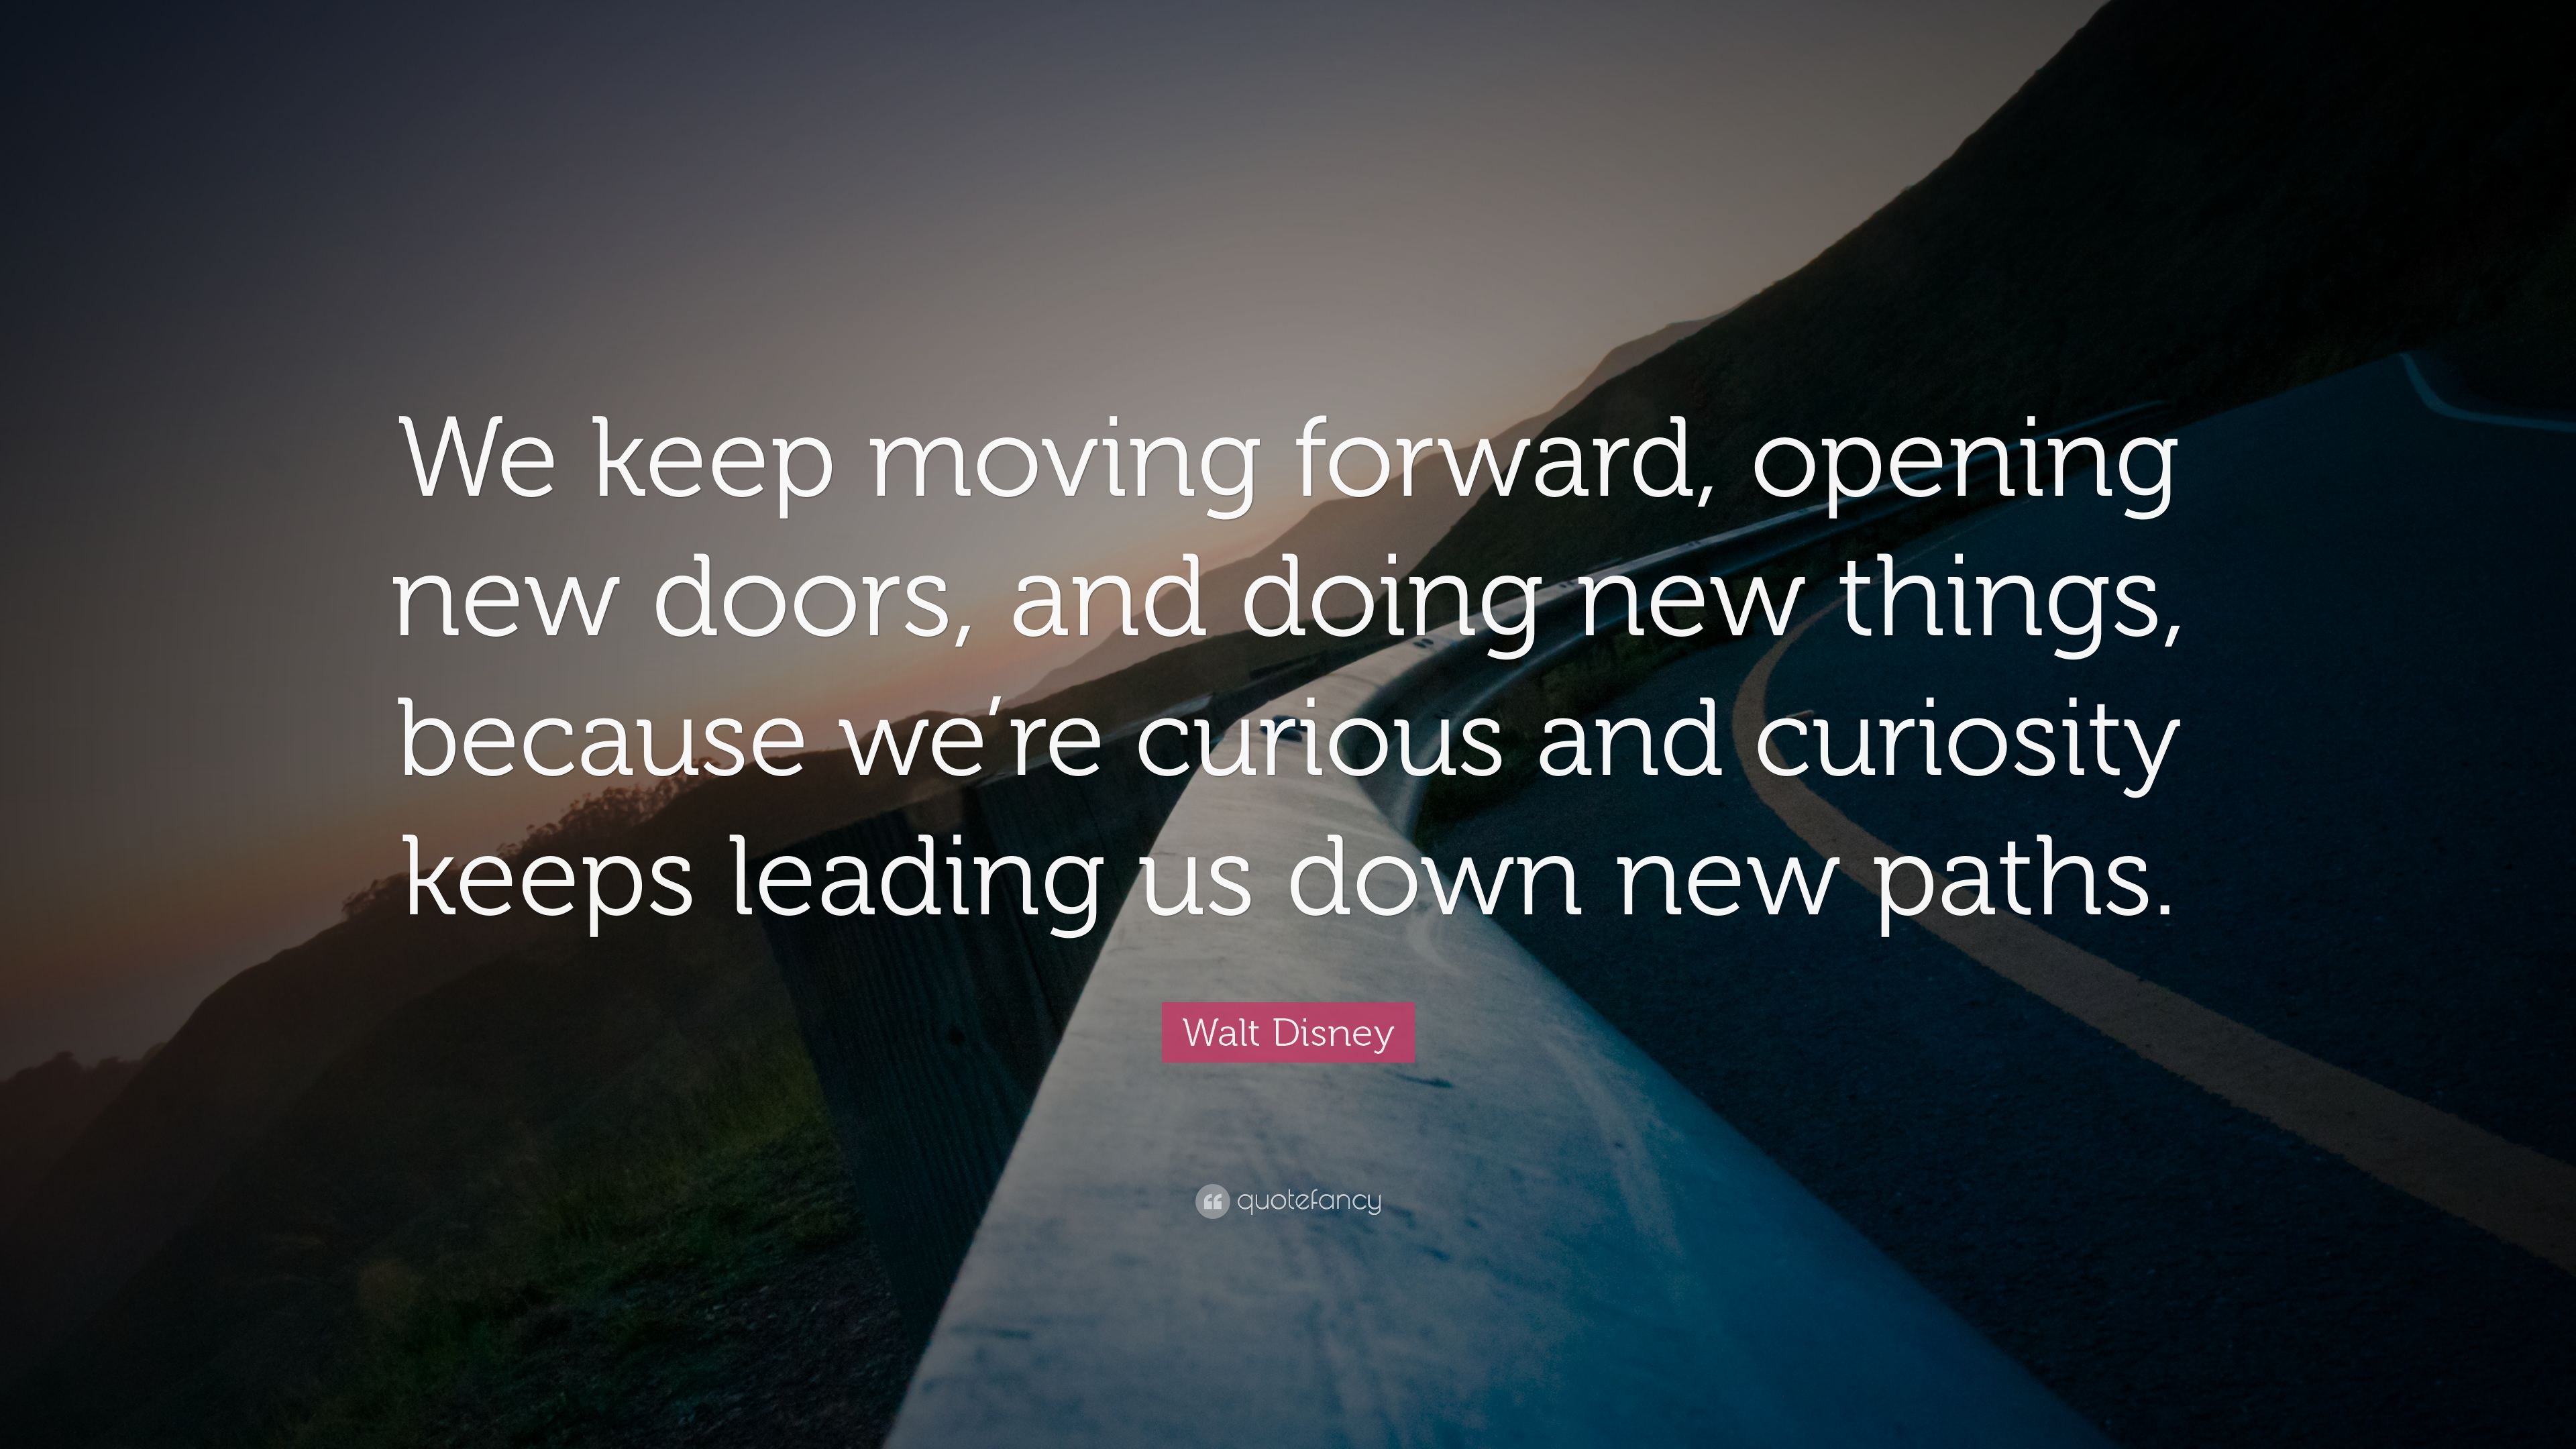 Quotes For Moving On Moving Forward Quotes 42 Wallpapers  Quotefancy